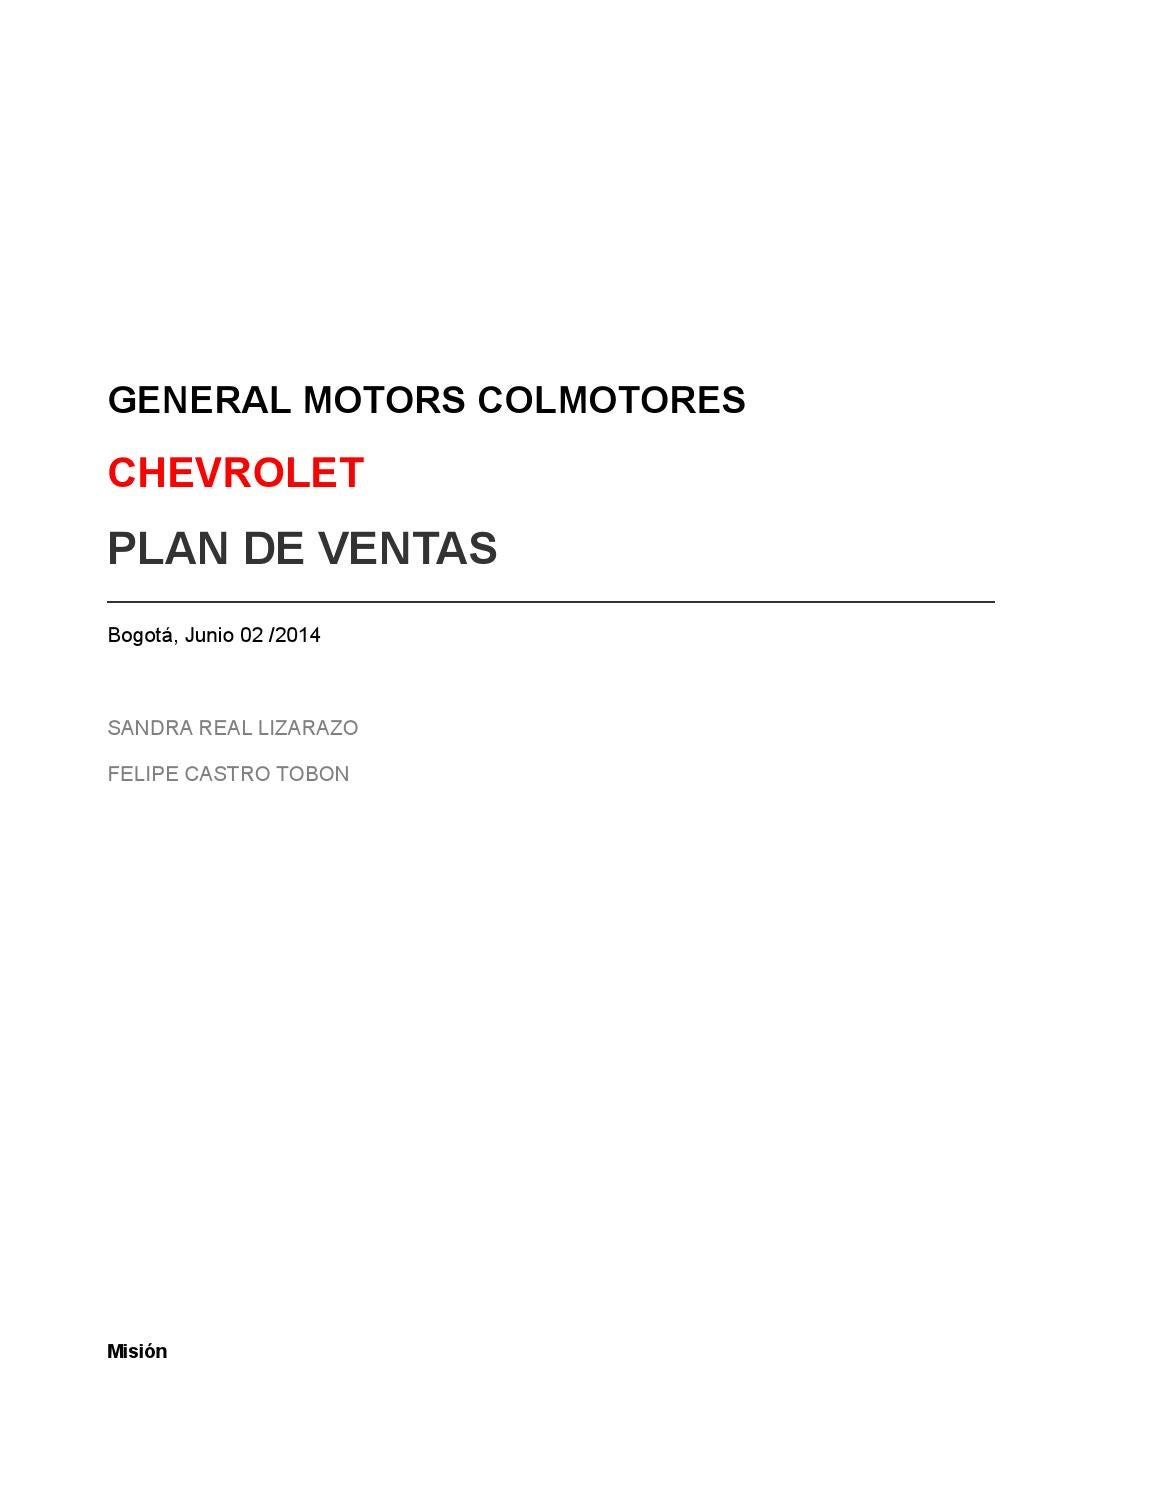 Plan Estrategico De Ventas Chevrolet By Sreal86 Issuu